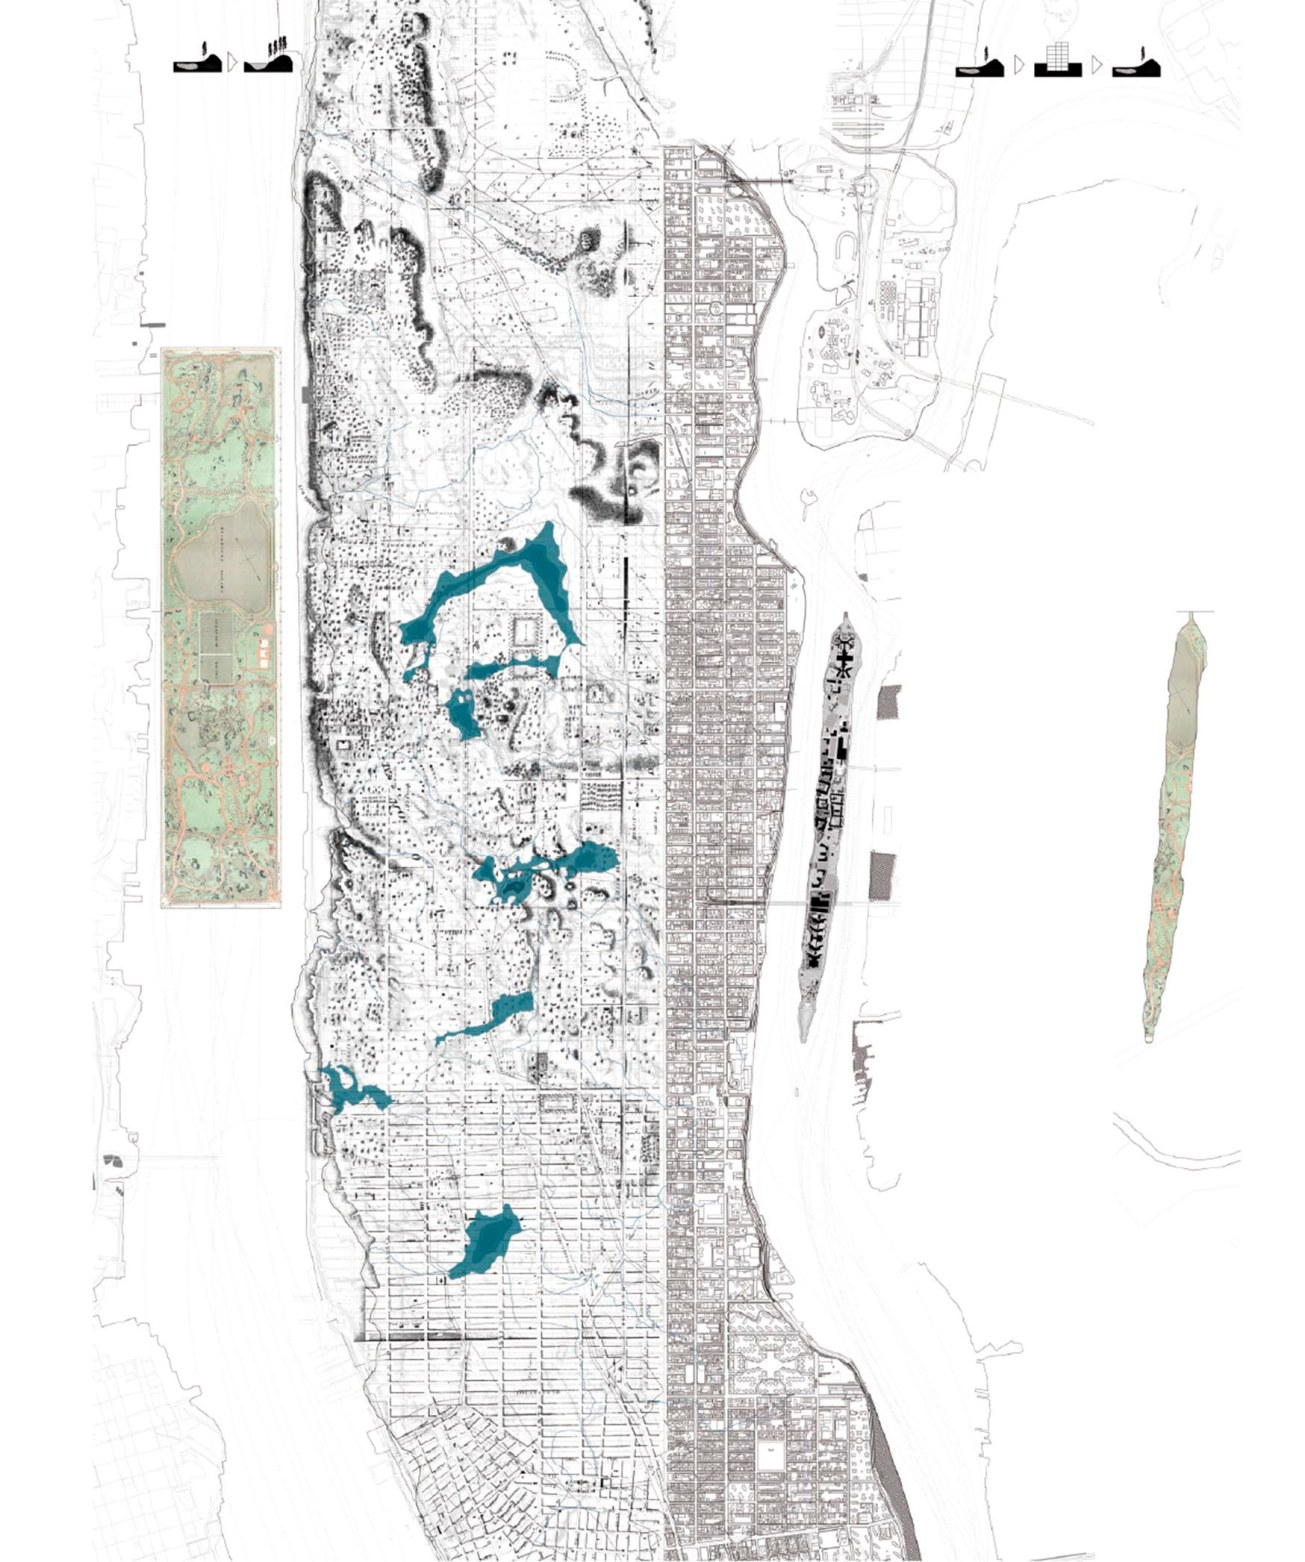 Manhattan_Roosevelt Island, management of the future ruins as landscape in motion, Laura Huerga, Final thesis project